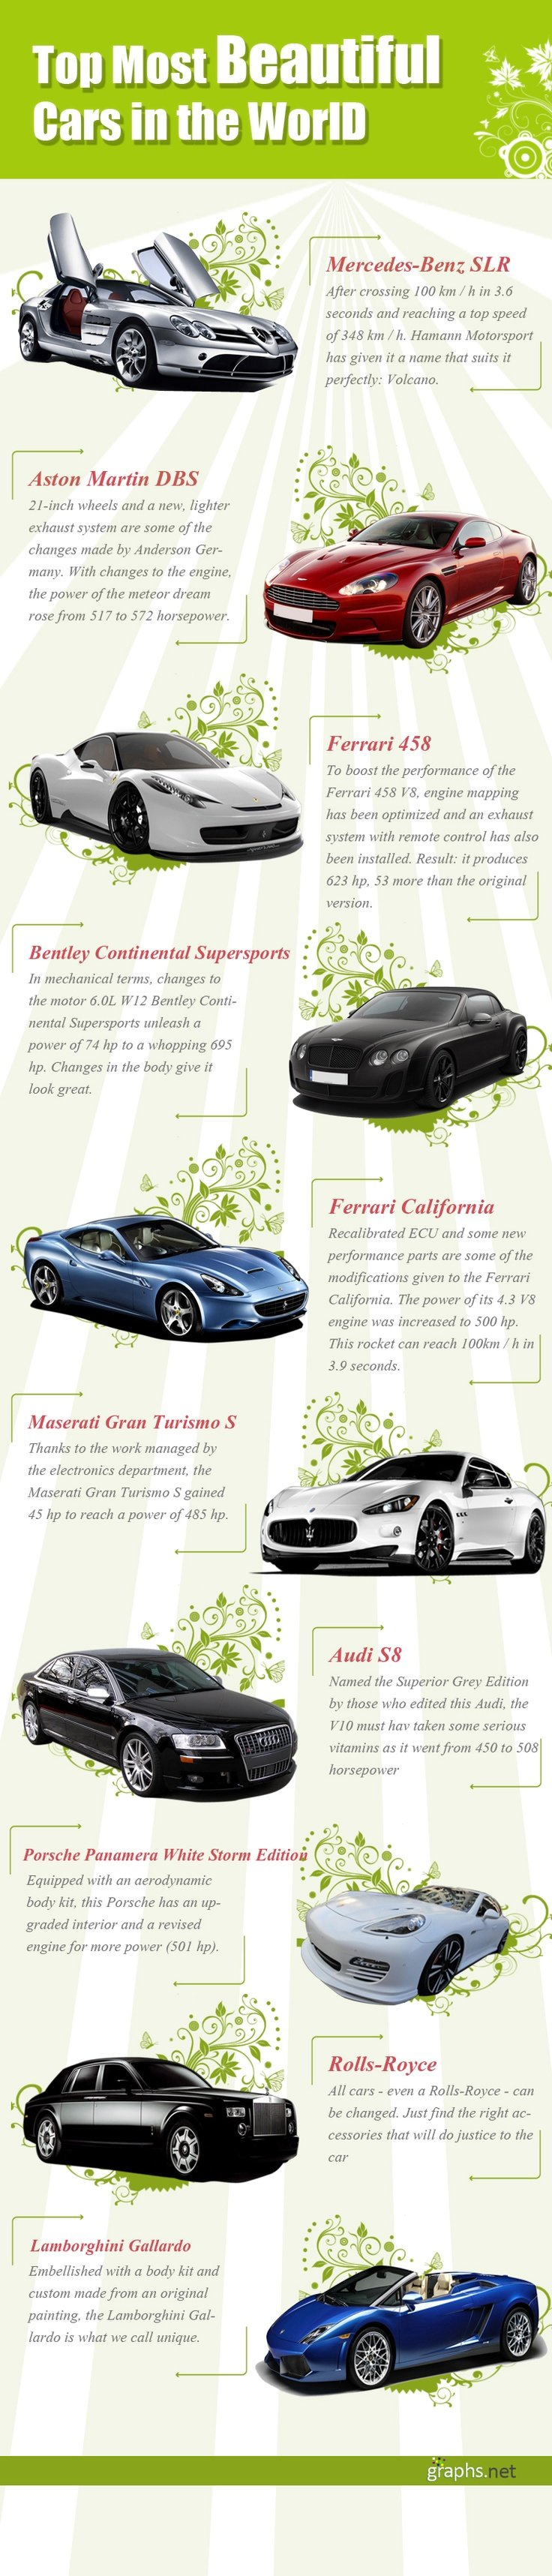 Top Most Beautiful Cars In the World - #Infographic